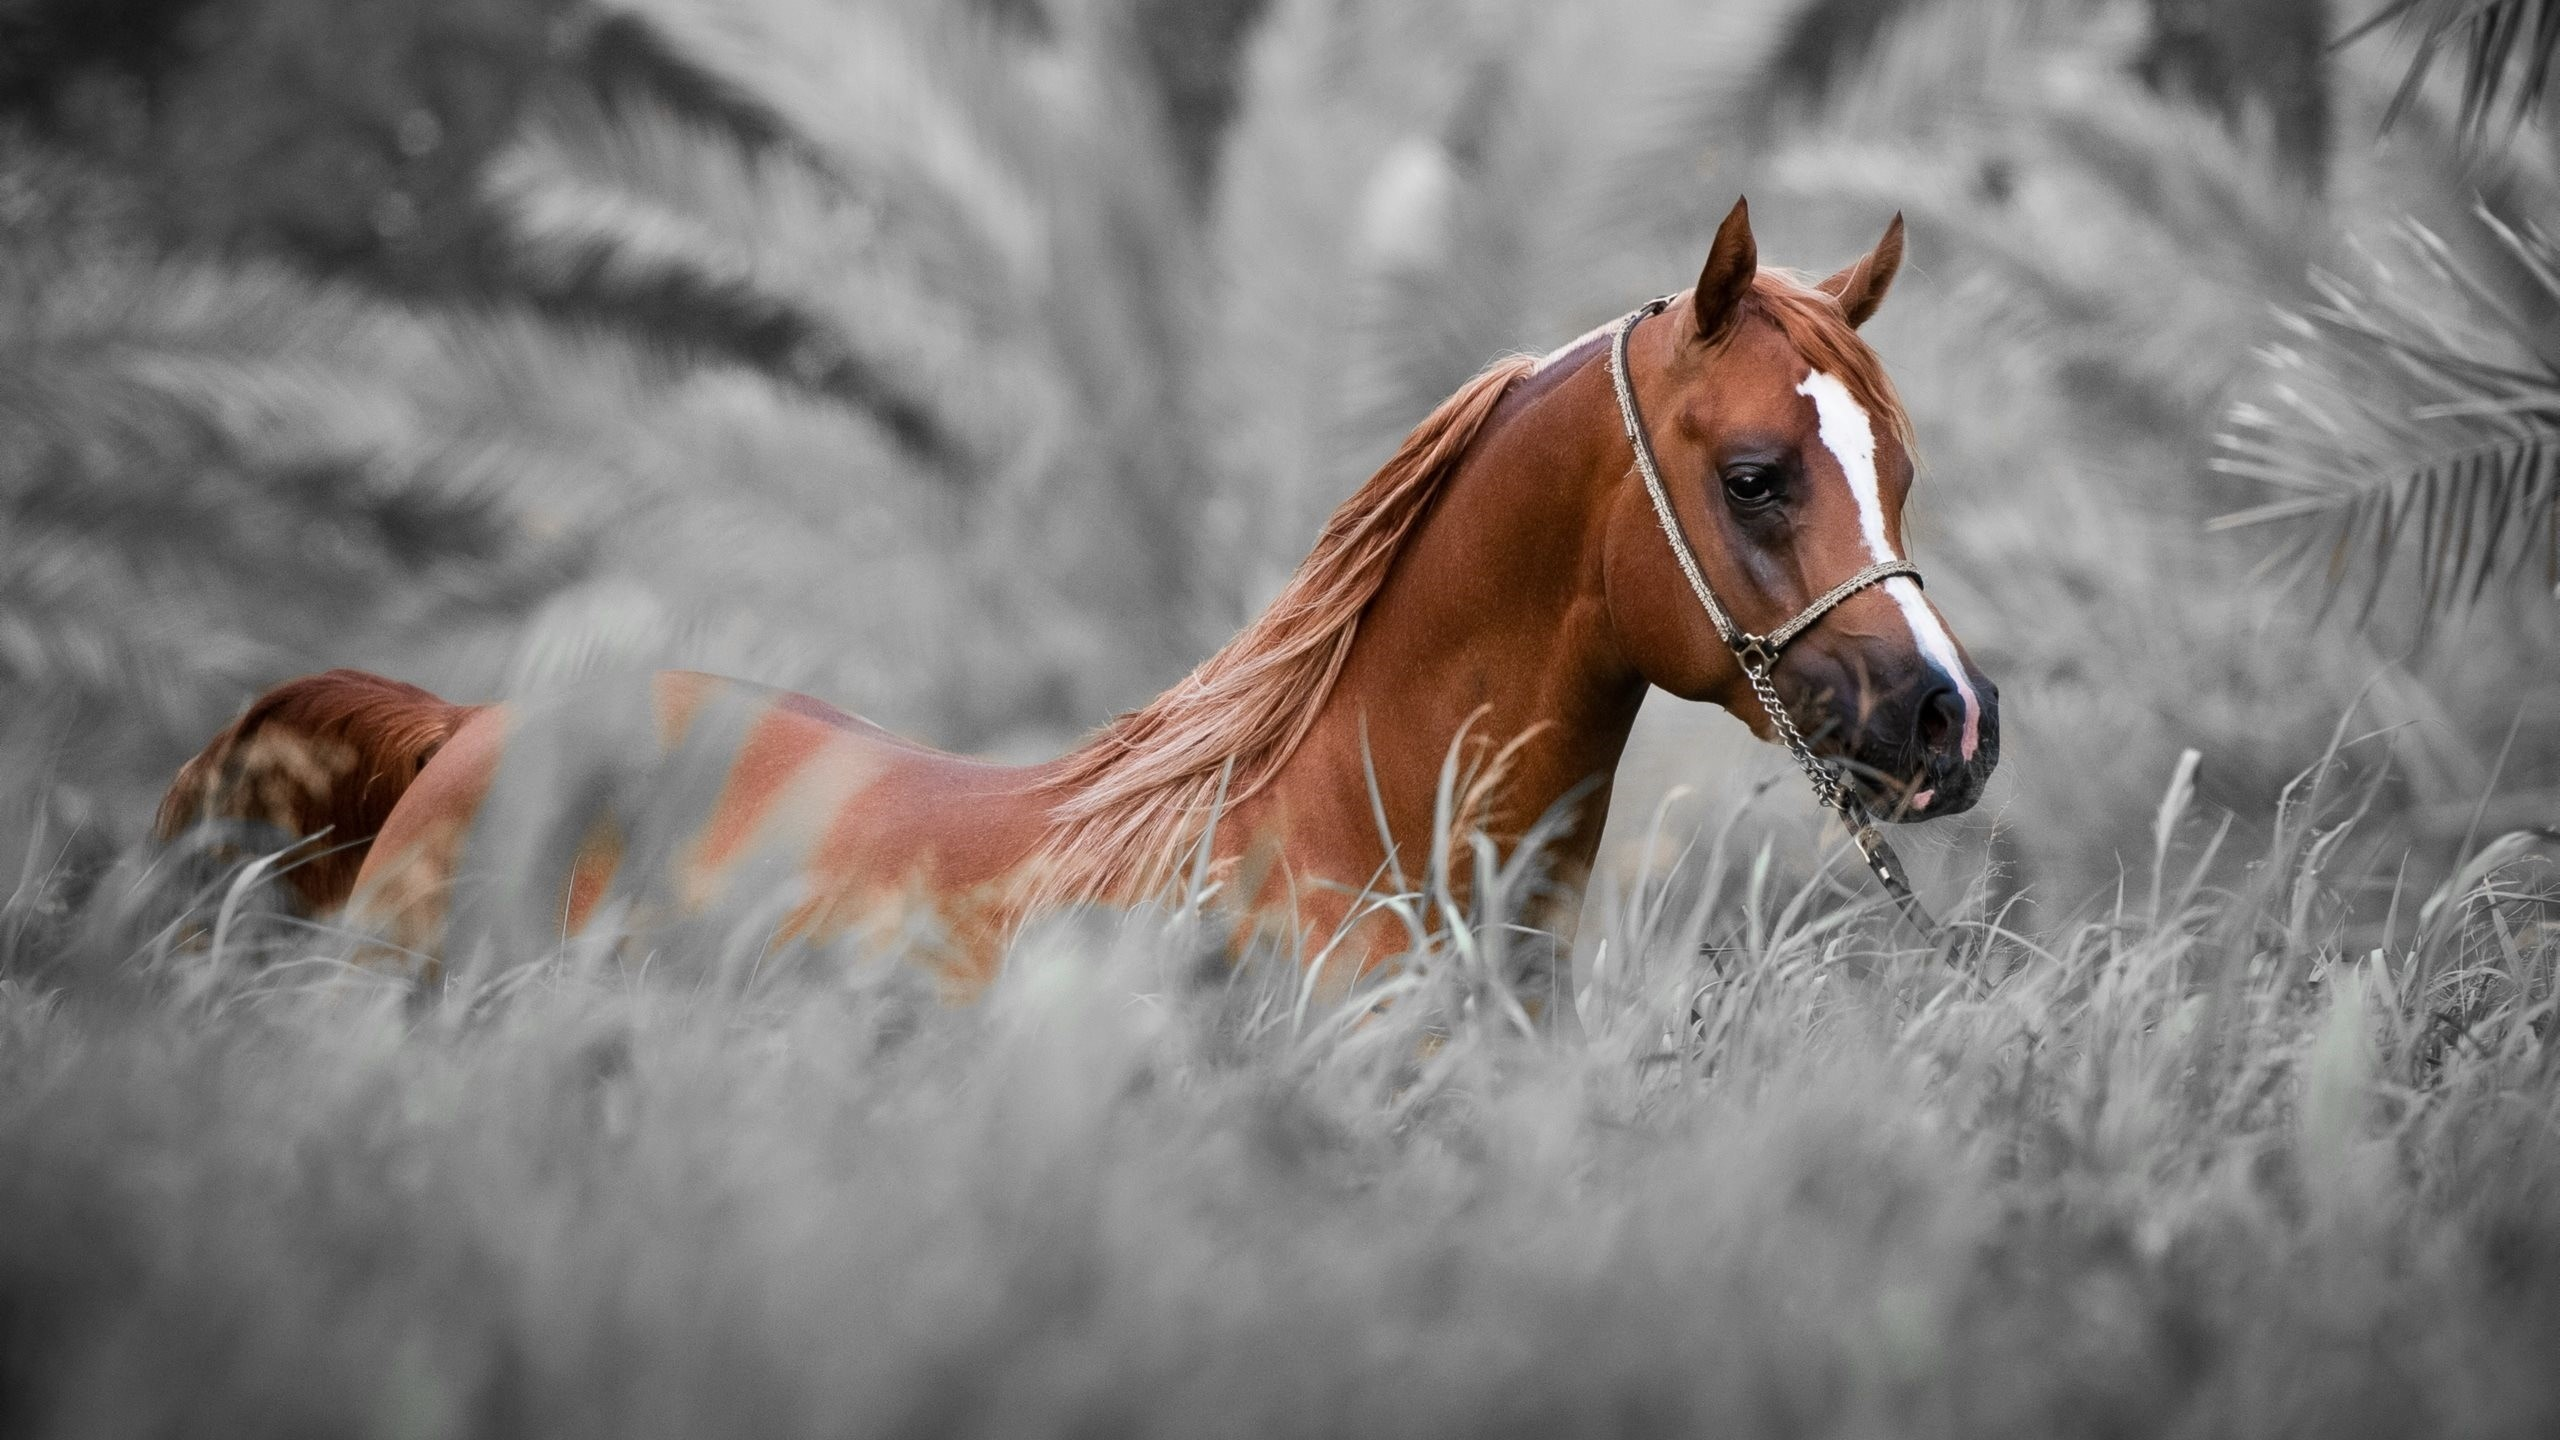 Arabian horse wallpaper 55 images - Arabian horse pictures ...